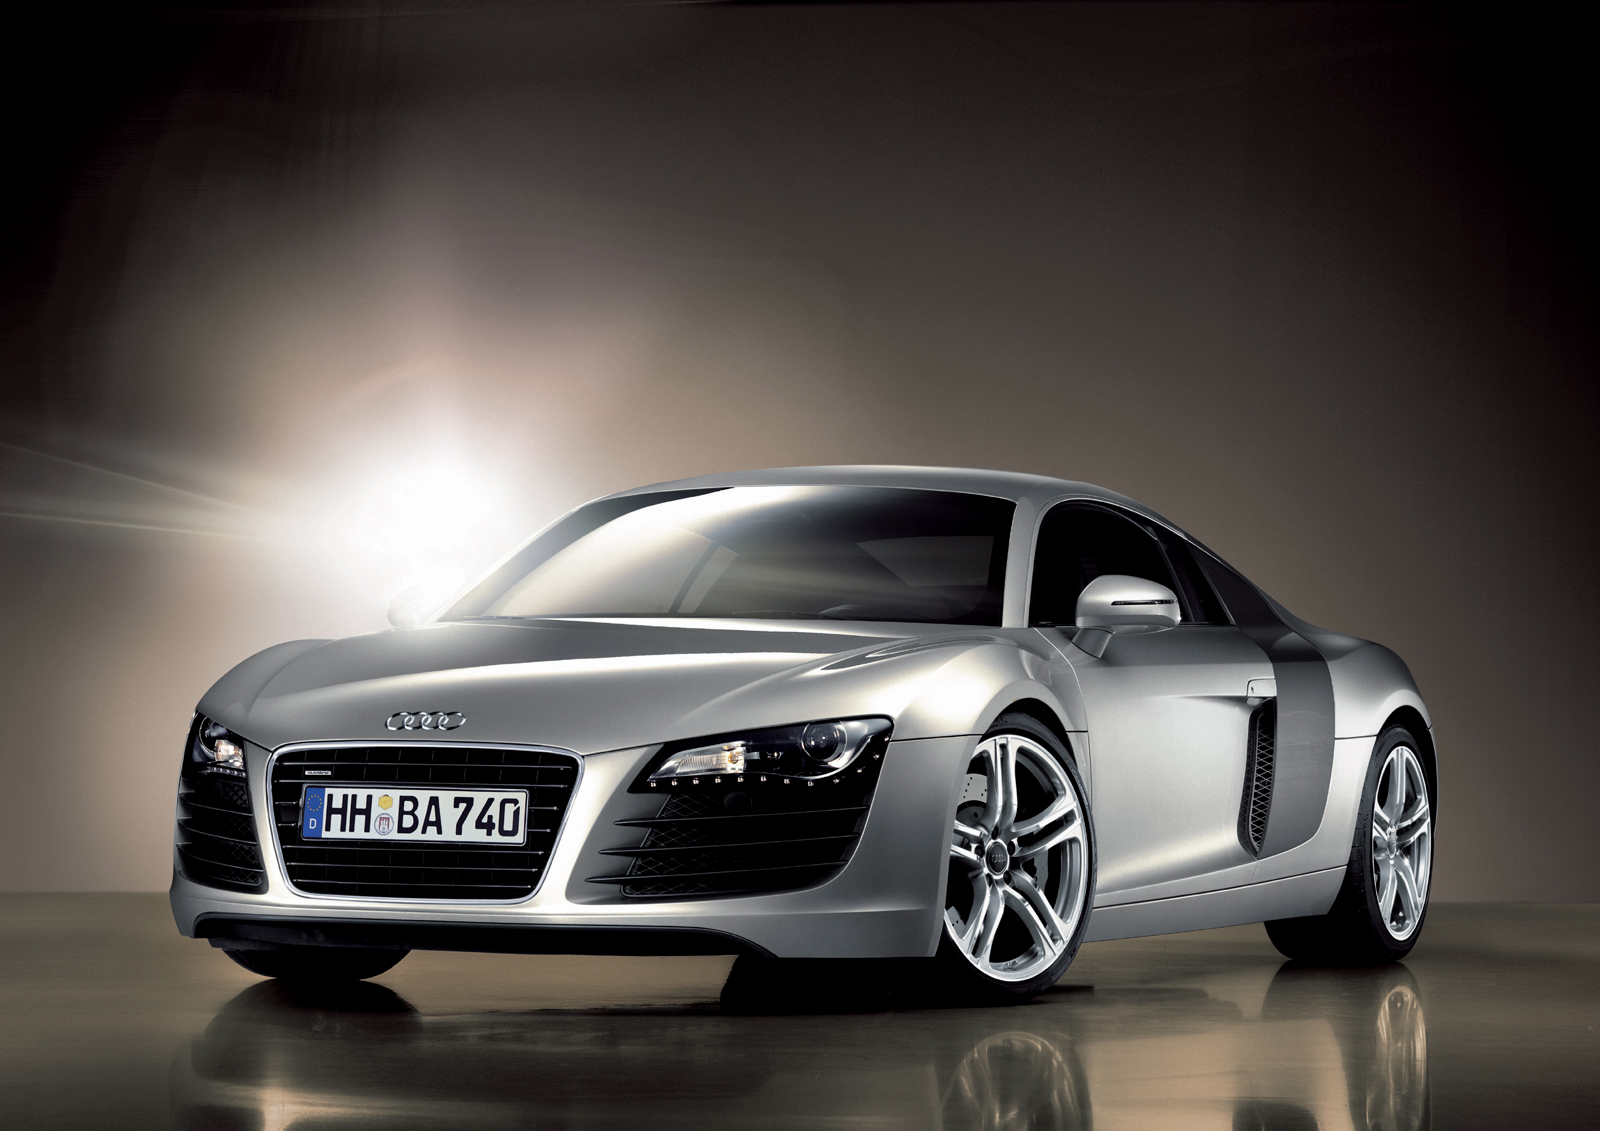 This Company Provides Automobiles Worldwide. For Audi Lovers Here Is Cool  Collection Of Audi Wallpapers And Pictures Of Audi Cars